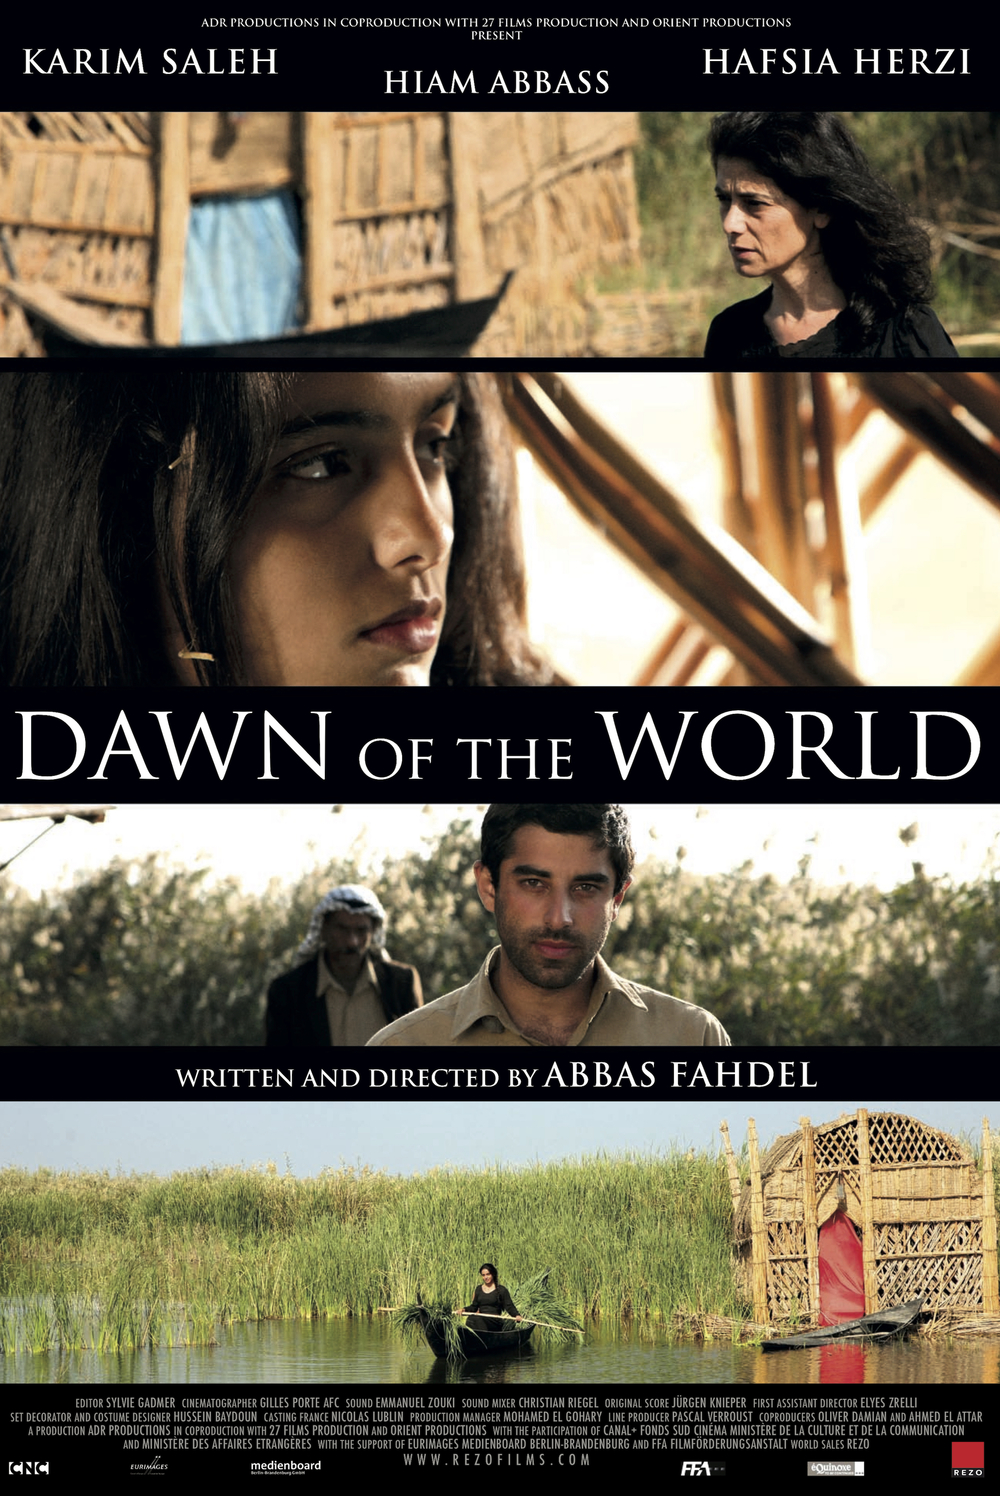 2009_Dawn_of_the_World_27_Films_Production.jpg